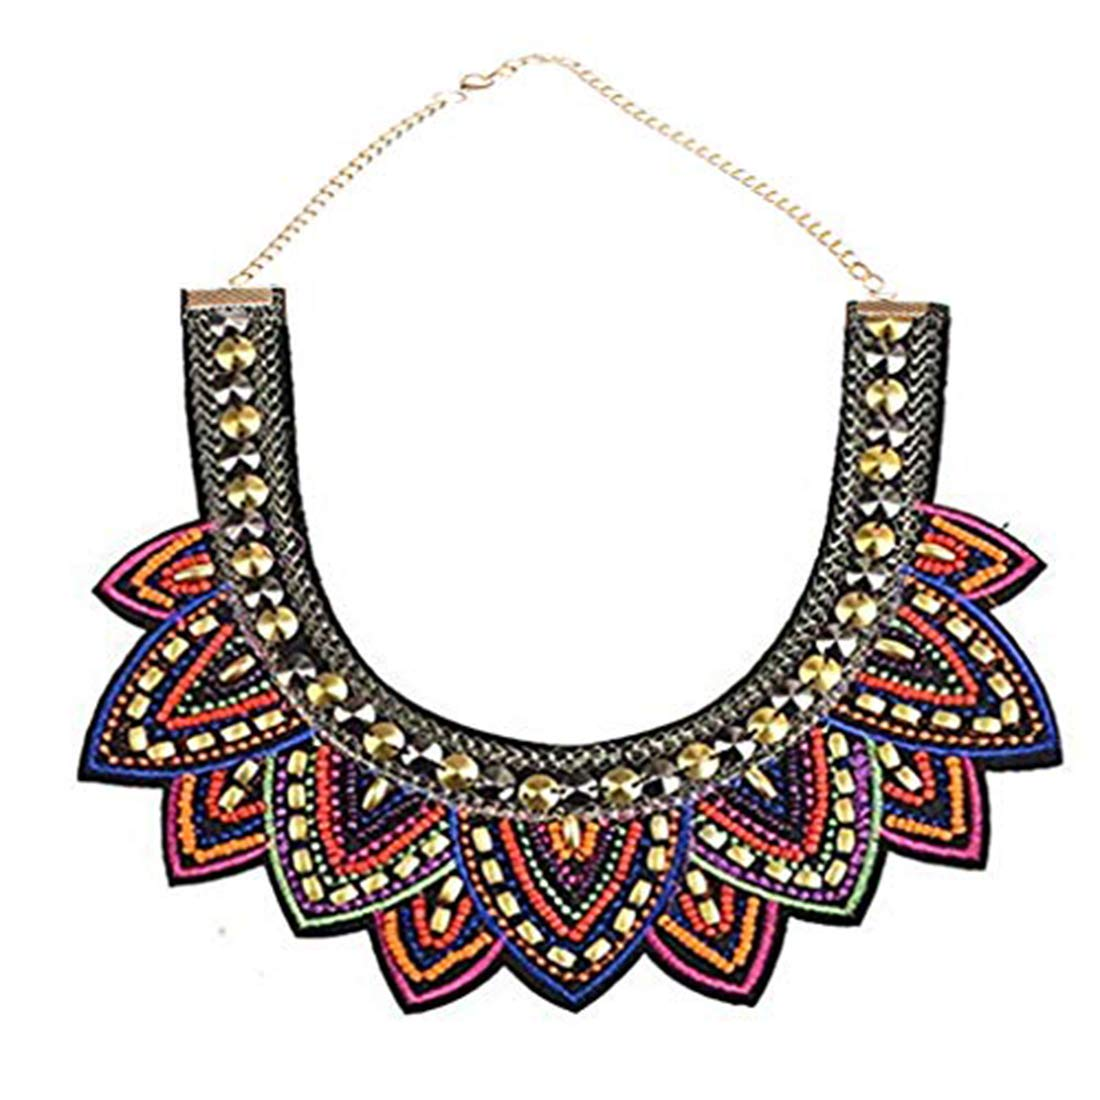 SUMAJU Collars Statement Necklace, Miraculous Garden Womens Vintage Fabric Colorful Bohemian Acrylic Beads Choker Necklace Jewelry ettlH126K02hyyp